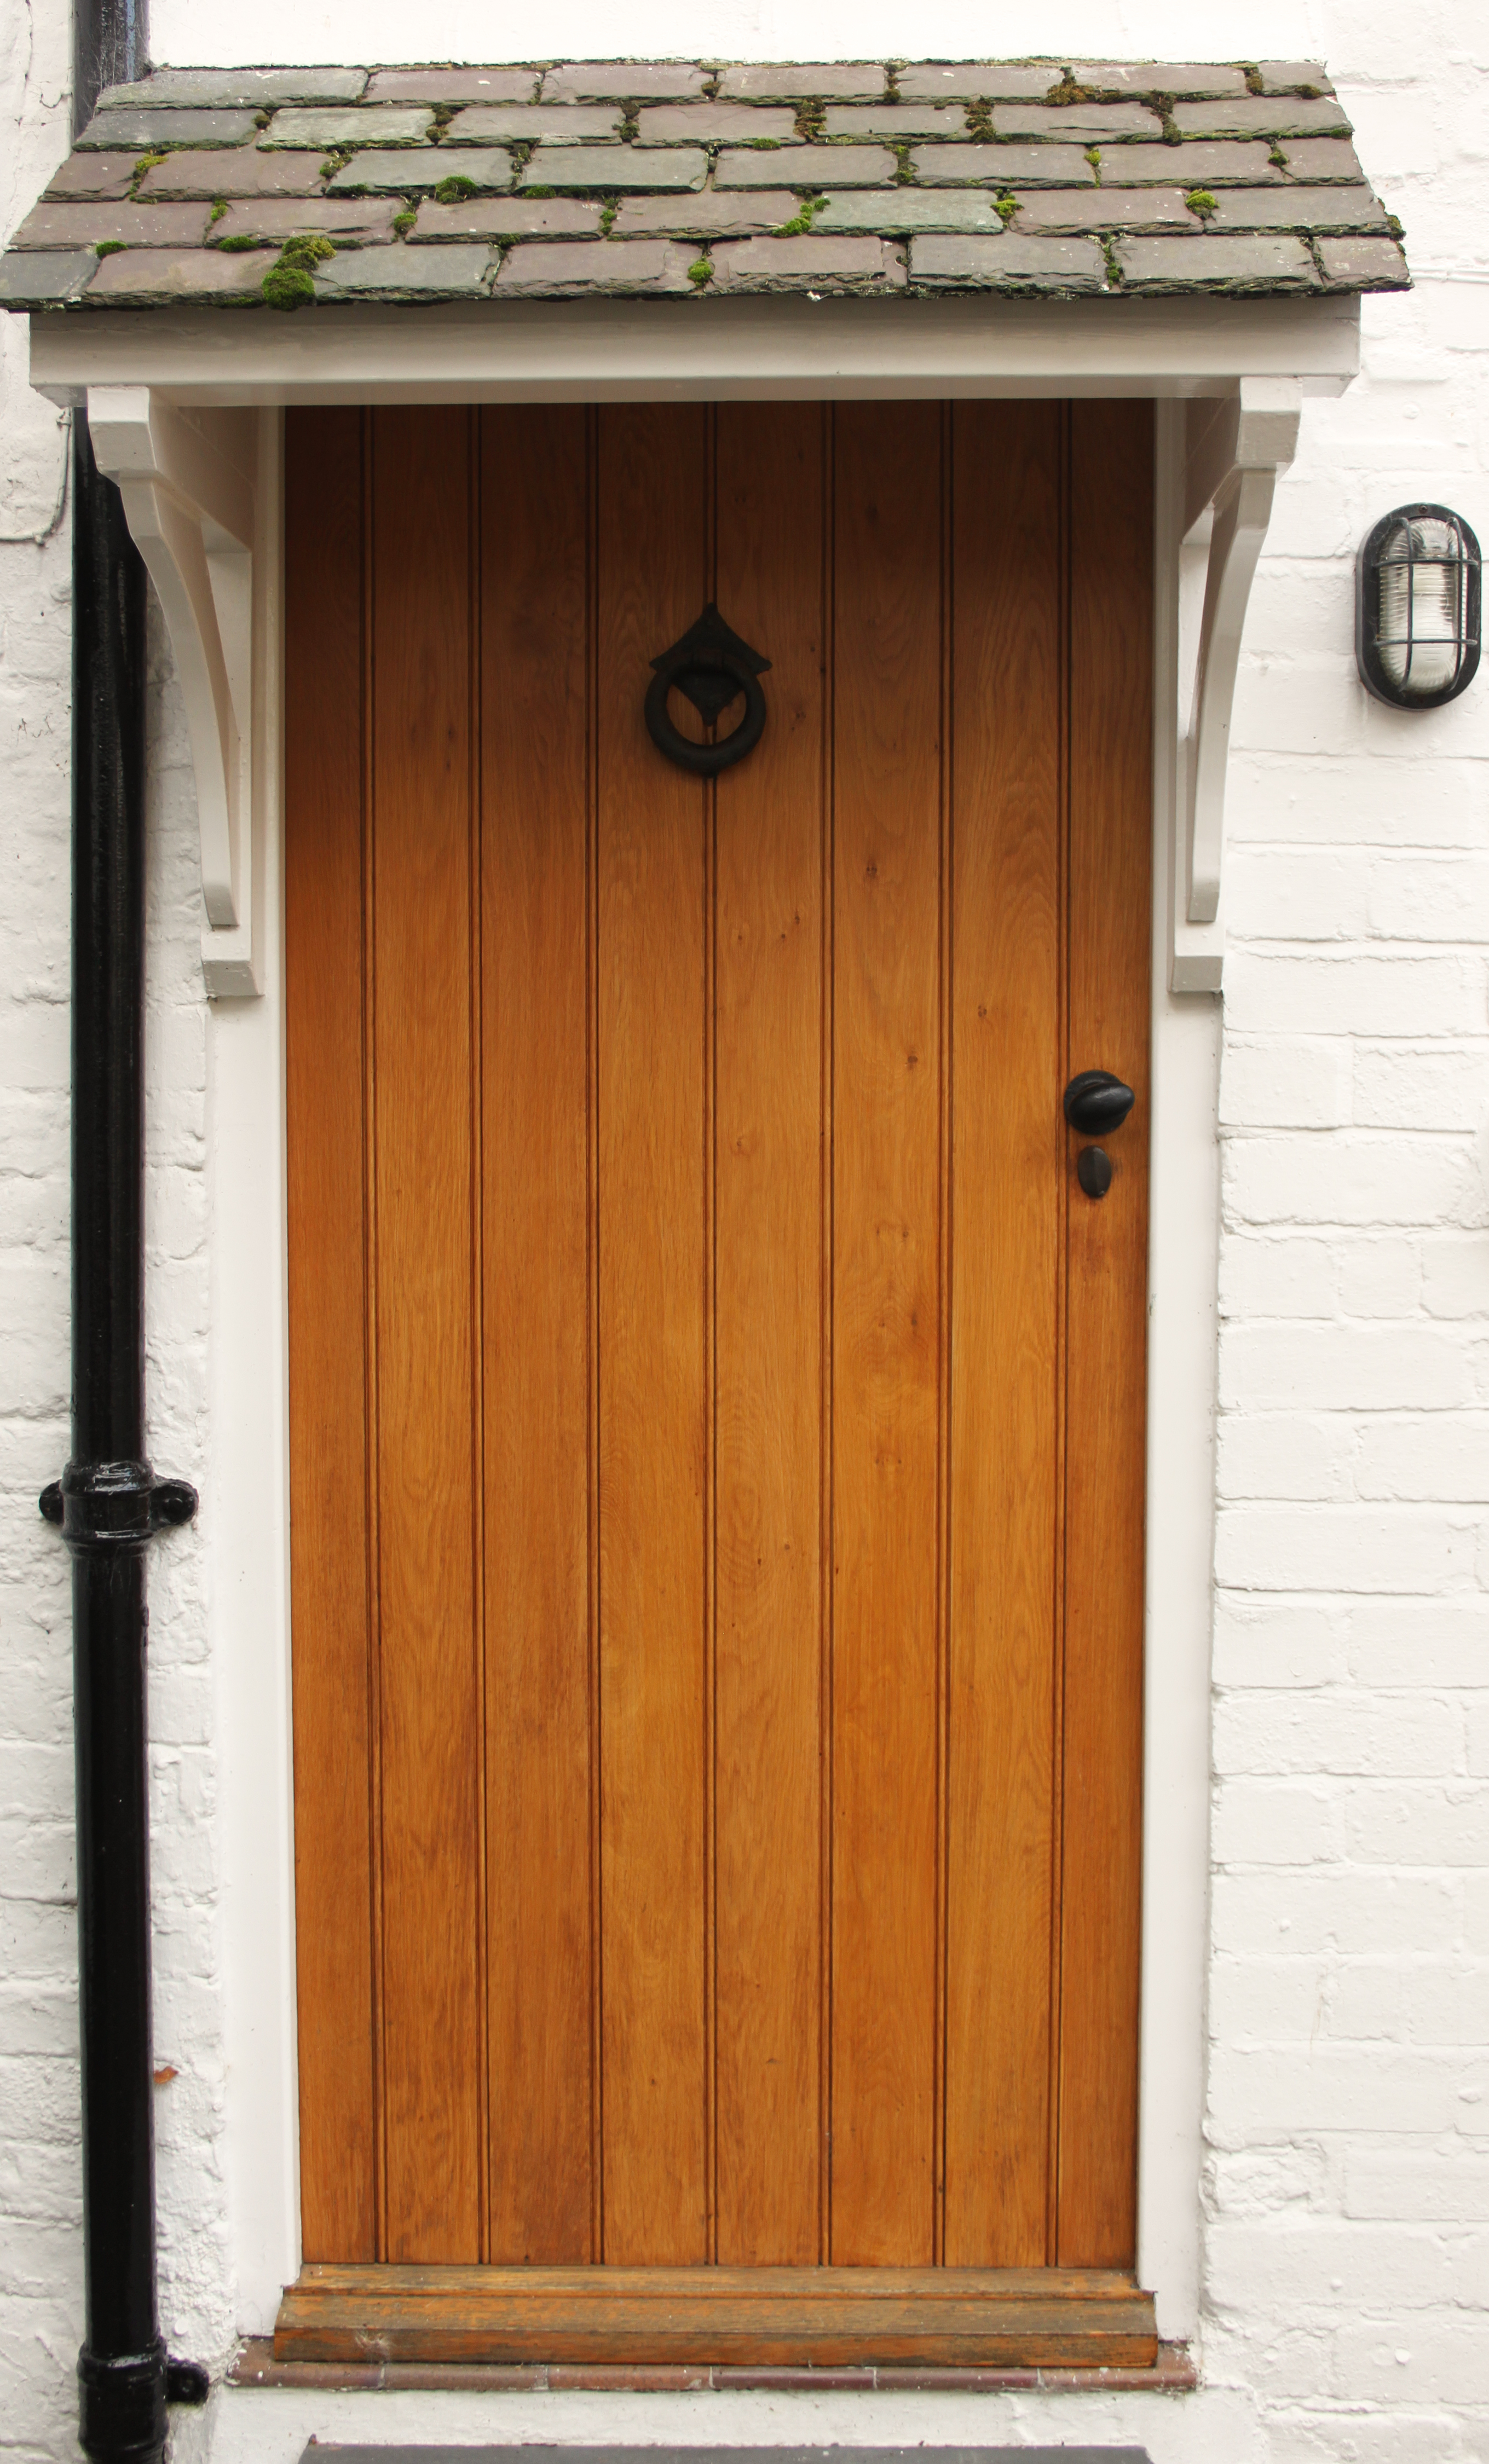 This charracter property has great curb appeal with a solid oak front door, made to measure